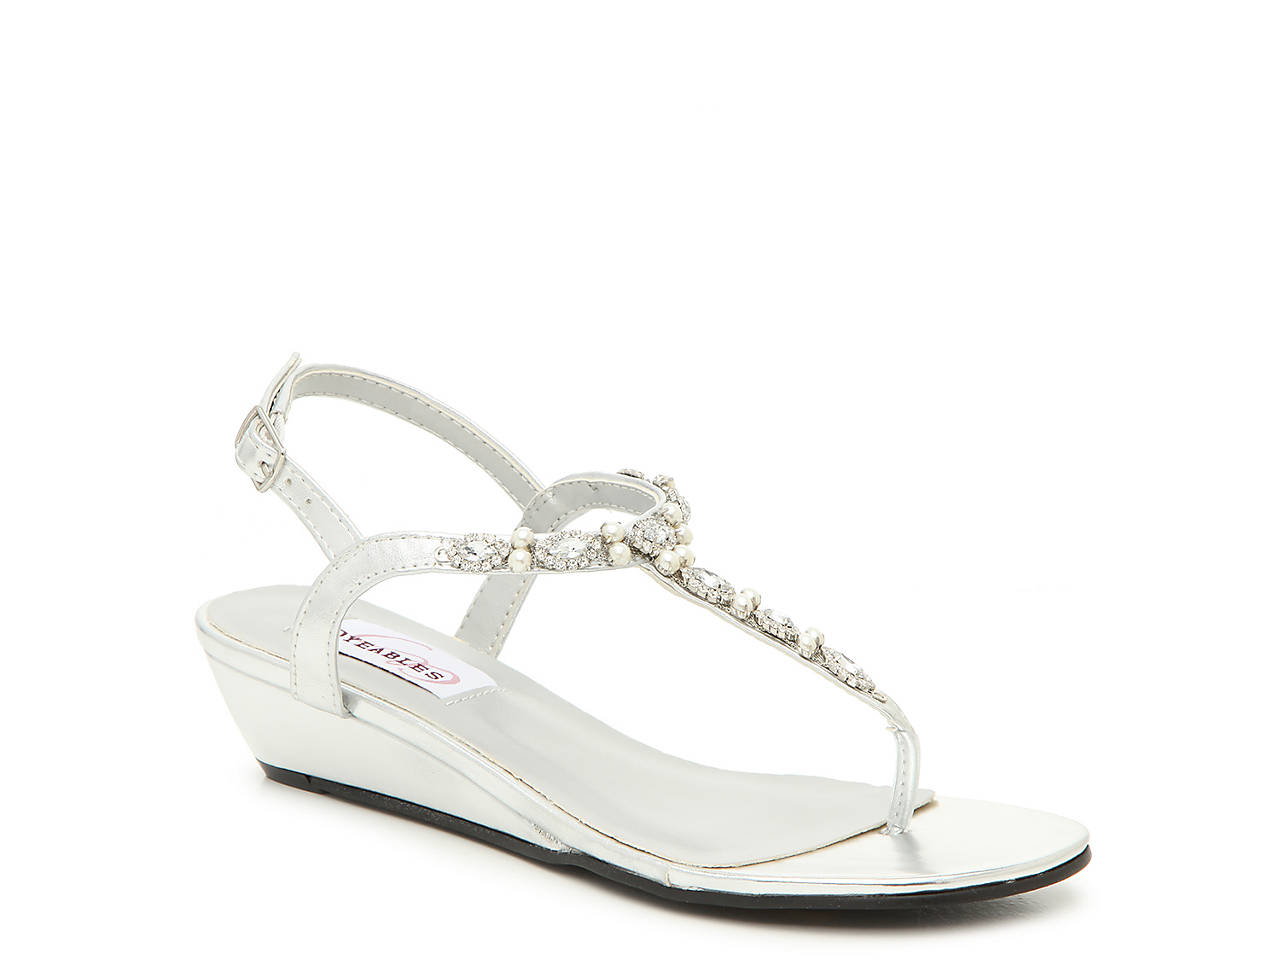 c7ee7a2c66 Dyeables Myra Wedge Sandal Women's Shoes   DSW